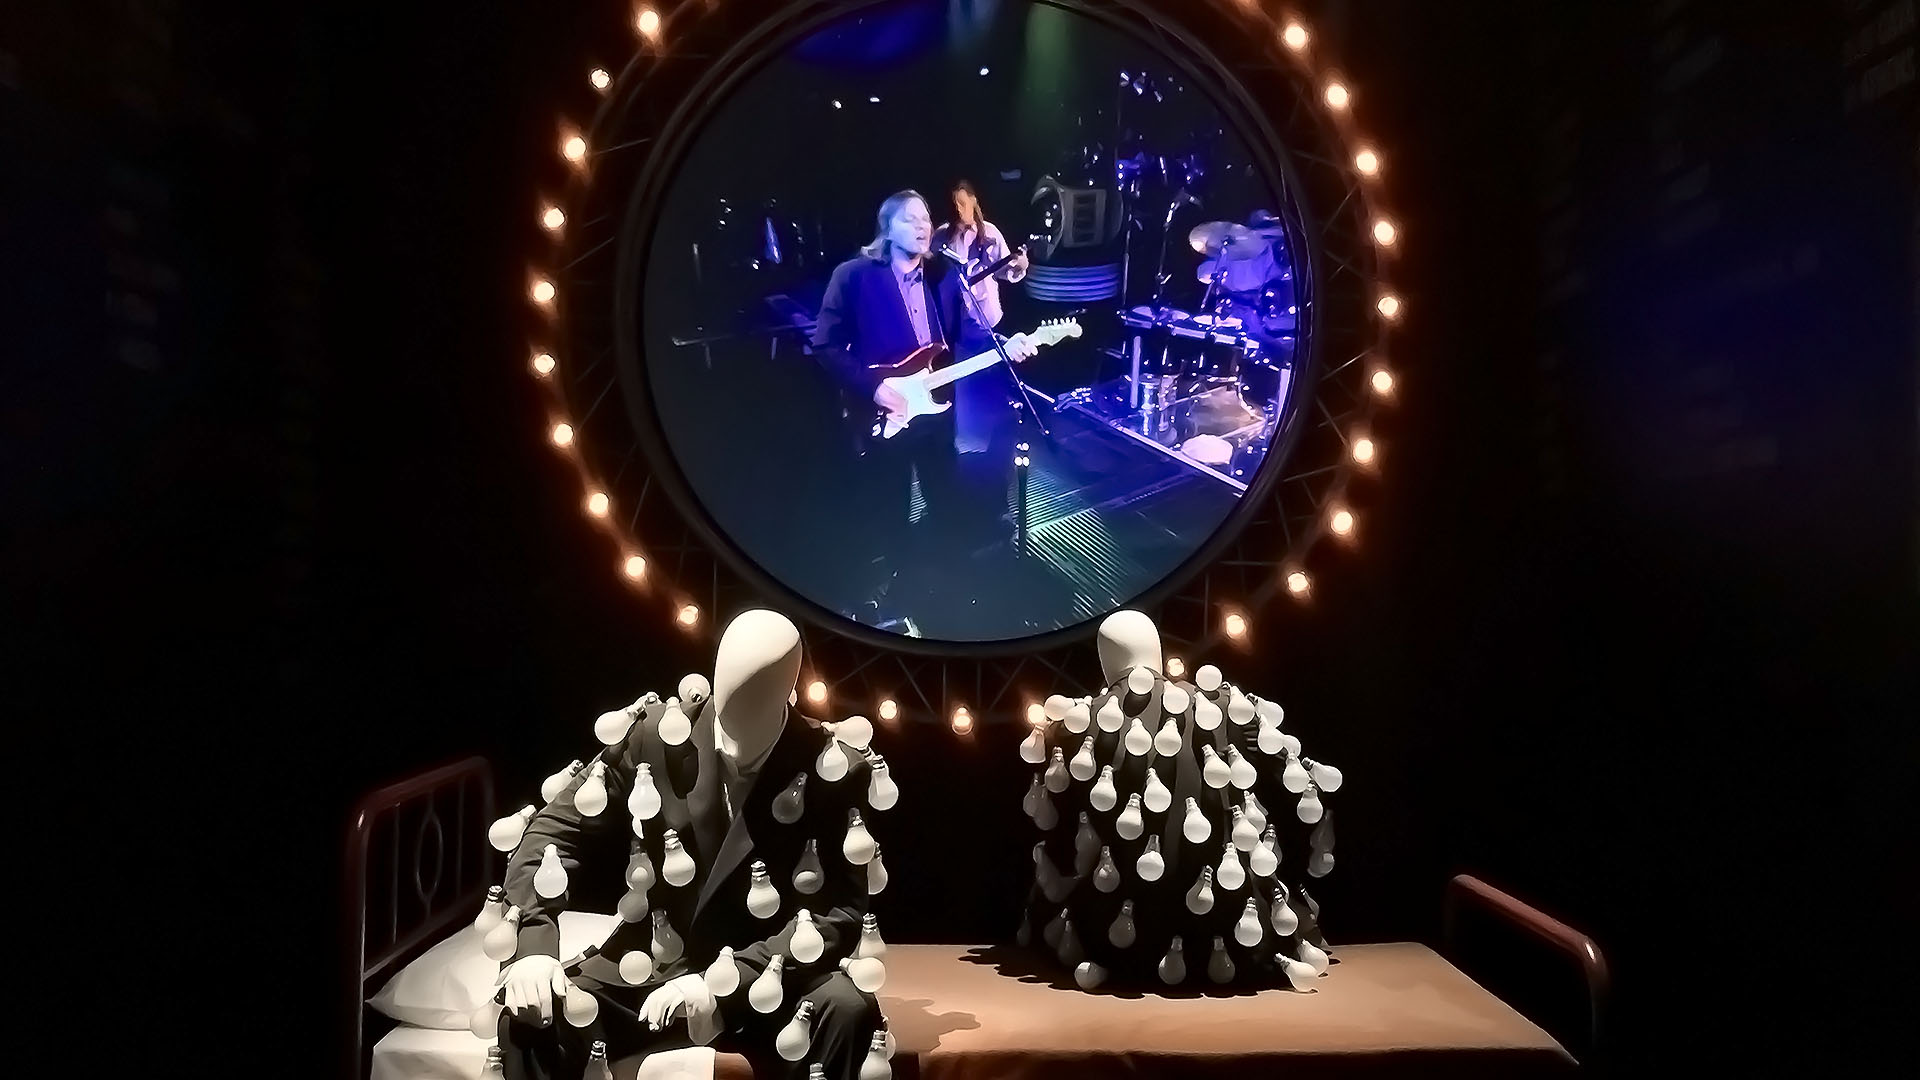 Pink Floyd Exhibition Mannequins Light Bulbs Bed Circular Image